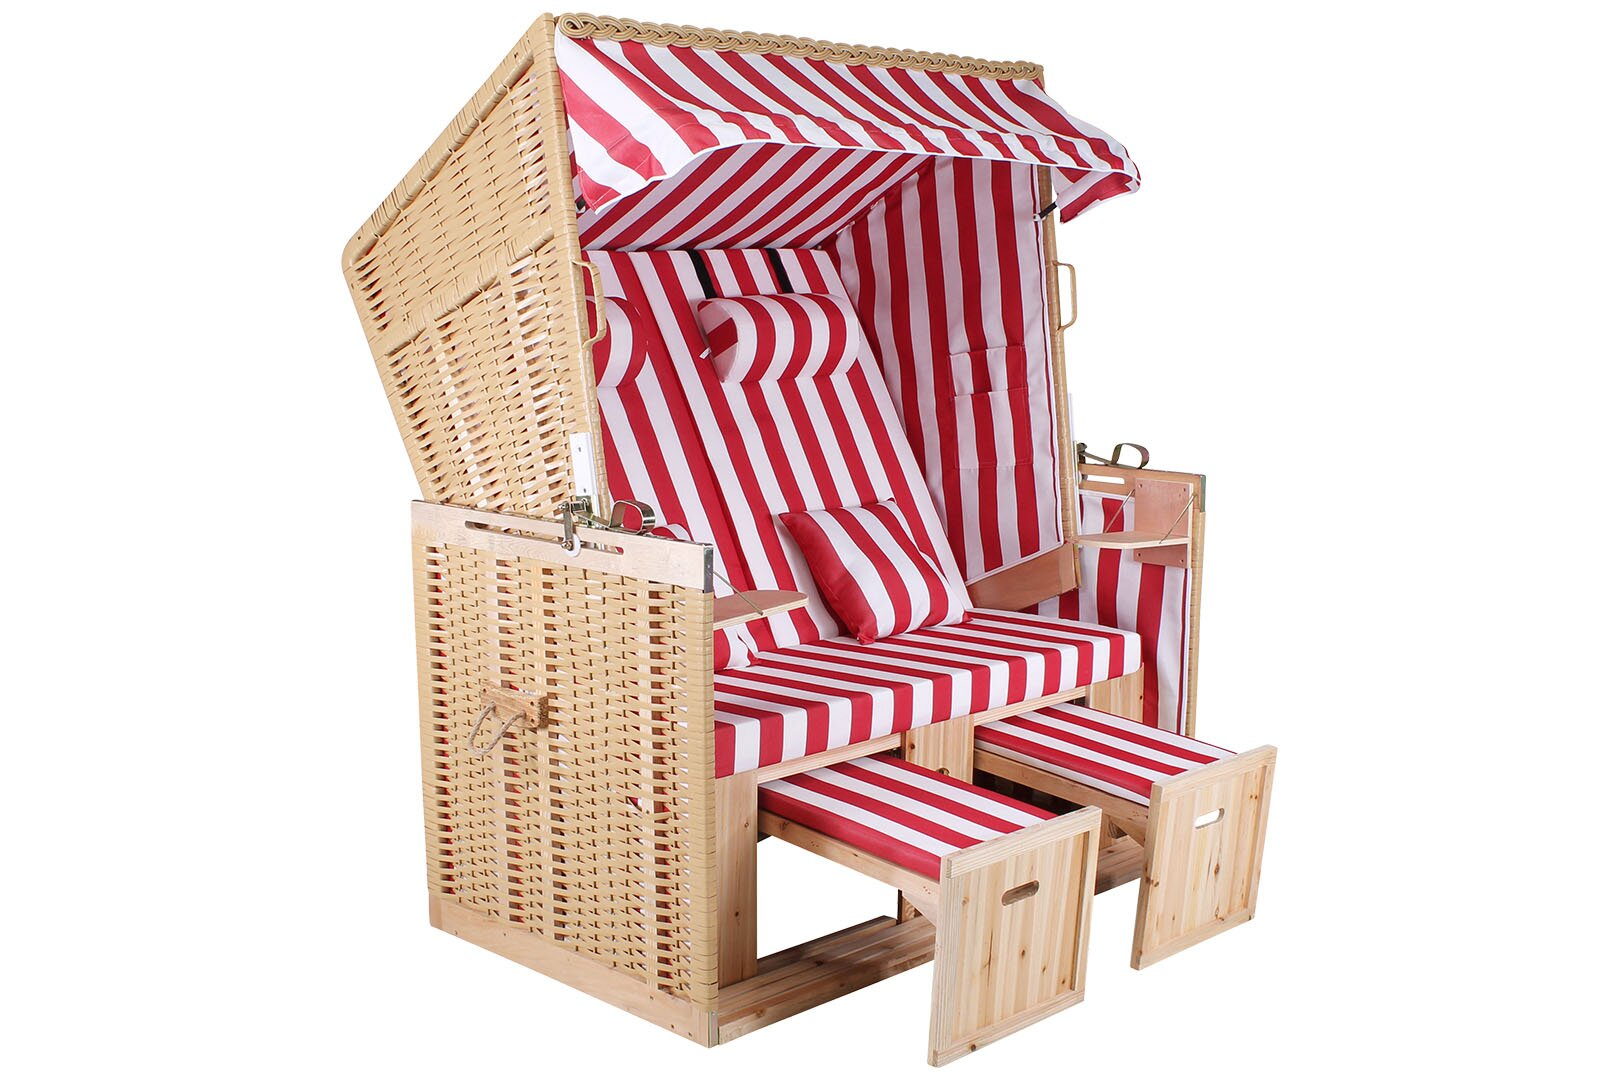 strandkorb sylt xl nordsee natur rot weiss trend shop baden. Black Bedroom Furniture Sets. Home Design Ideas